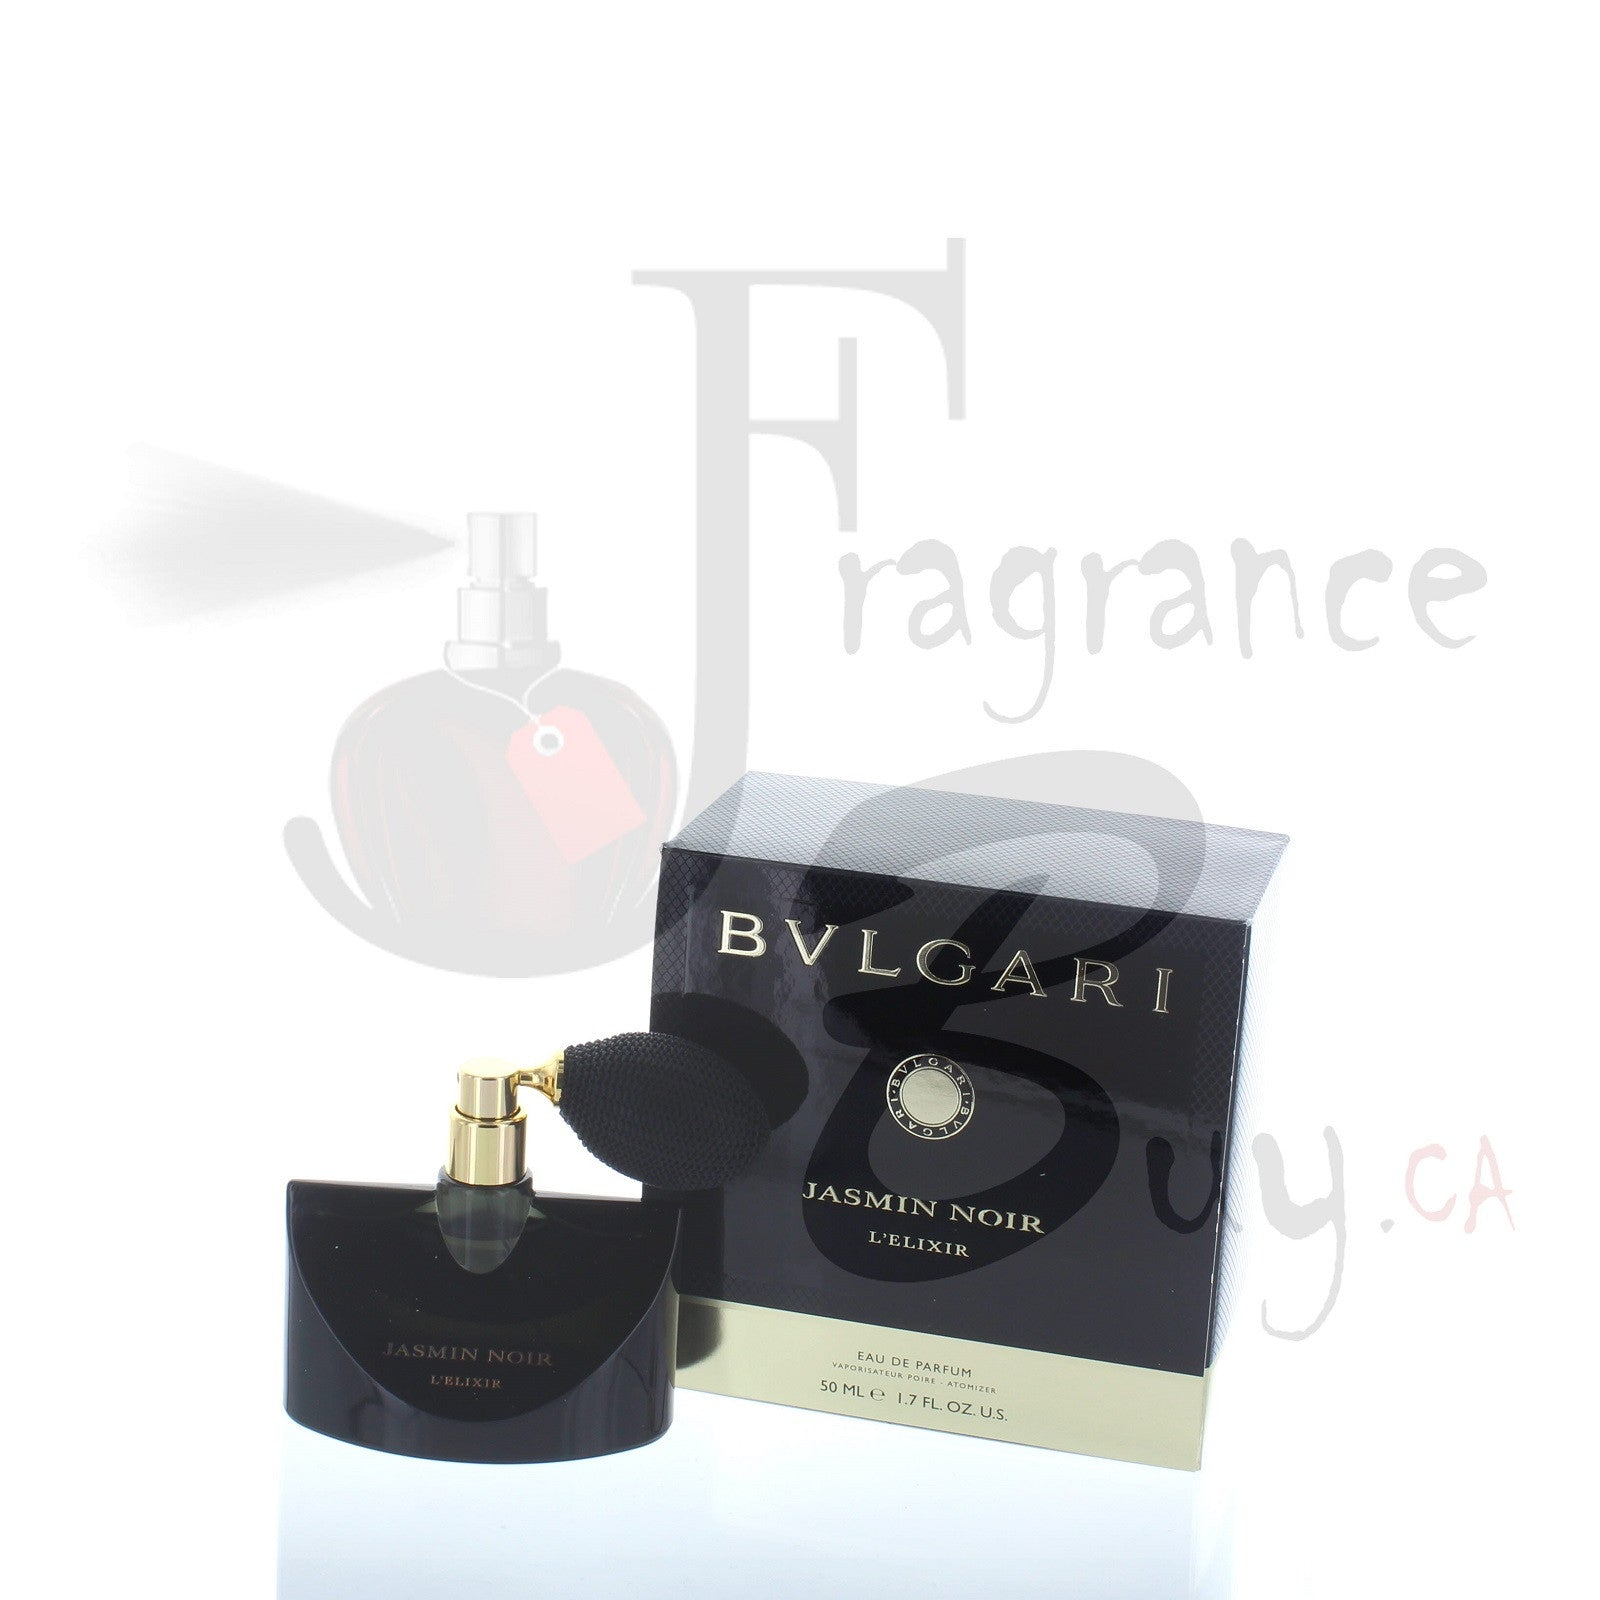 Bvlgari Jasmin Noir L'Elixir For Woman